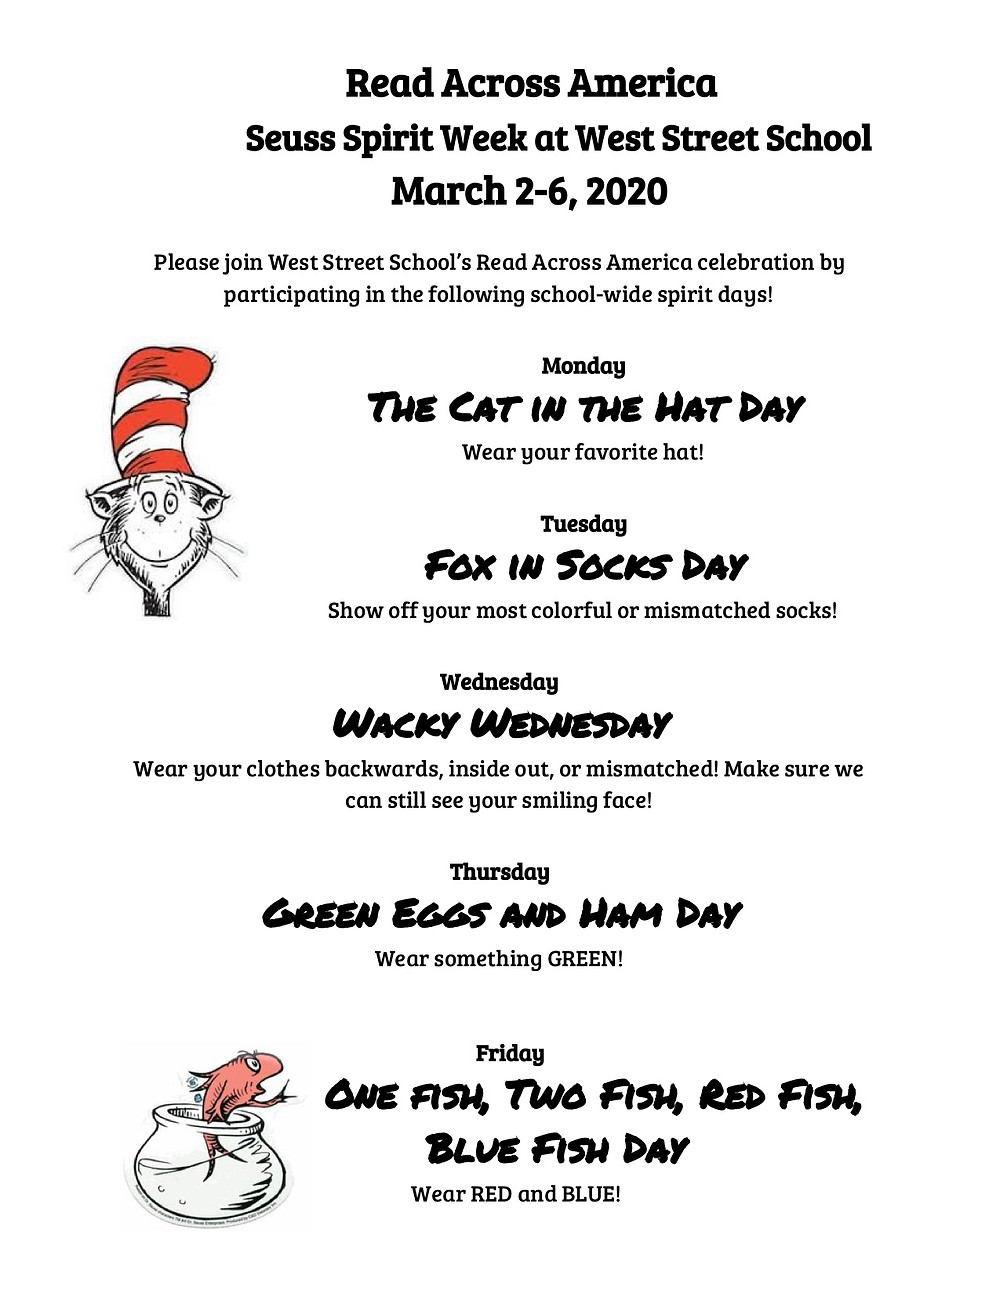 Flyer for Read Across America at West Street School in English